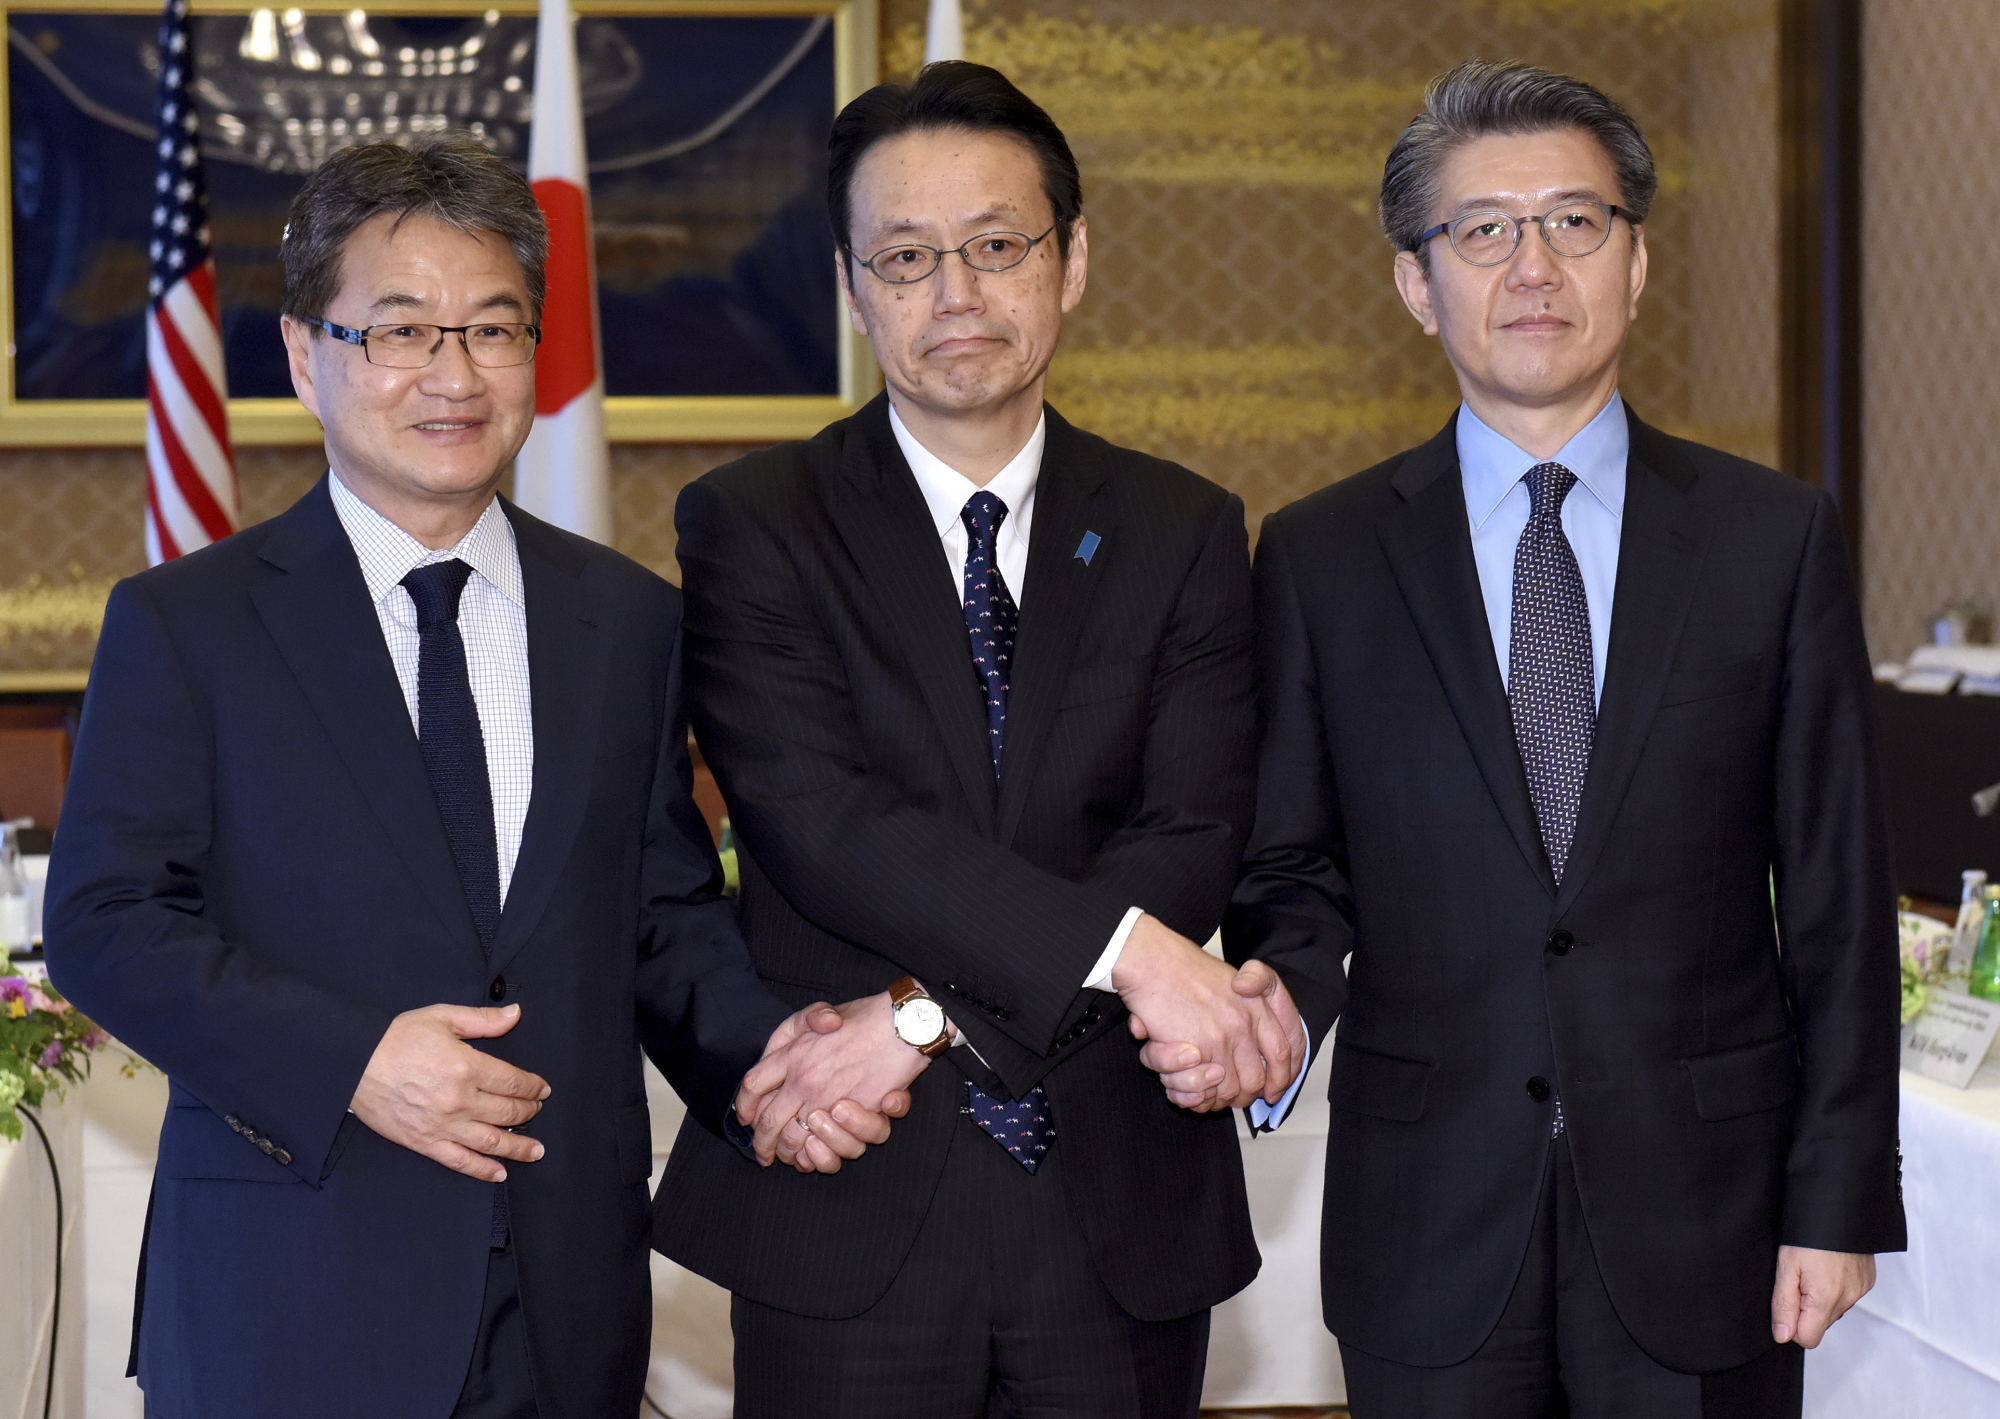 Joseph Yun (from left), U.S. special representative for North Korea policy, Kenji Kanasugi, director-general of the Foreign Ministry's Asian and Oceanian Affairs Bureau, and Kim Hong-kyun, special representative for Korean Peninsula peace and security affairs at the South Korean Foreign Ministry, join hands before their meeting about North Korean issues at the Iikura Guesthouse in Tokyo on Tuesday. | AP